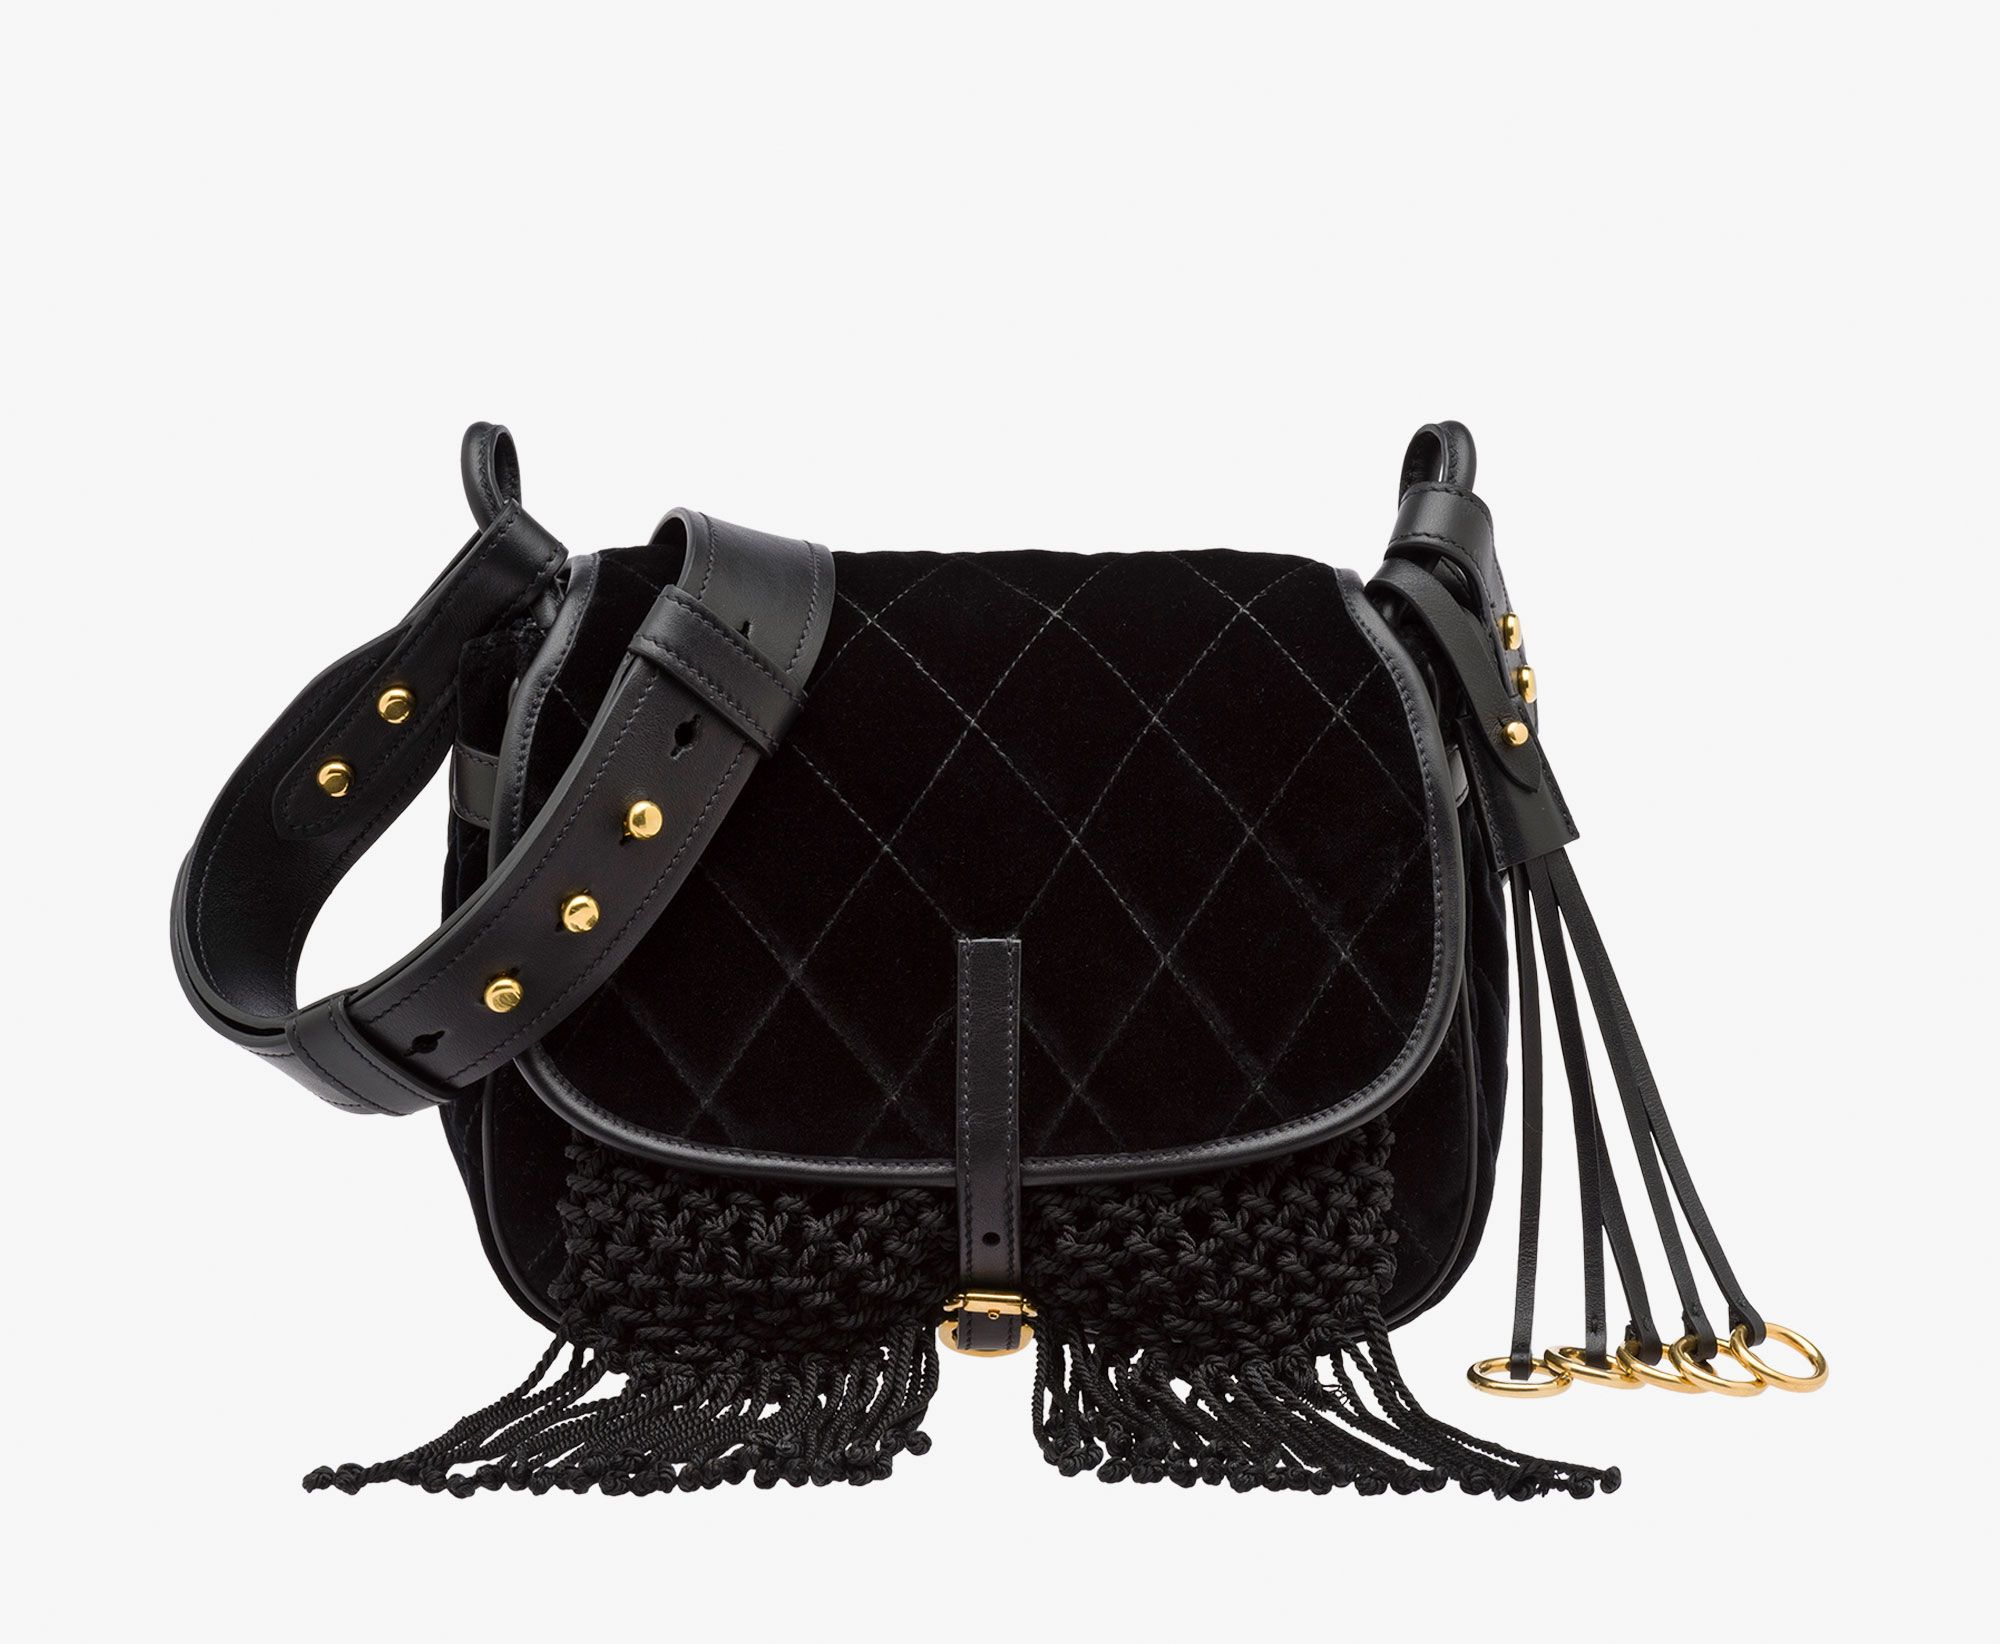 20b41fcf1f61 Prada Corsaire calf leather and velvet bag with fringe Leather shoulder  strap Gold-plated hardware Metal lettering logo on rear Buckle closure One  outside ...